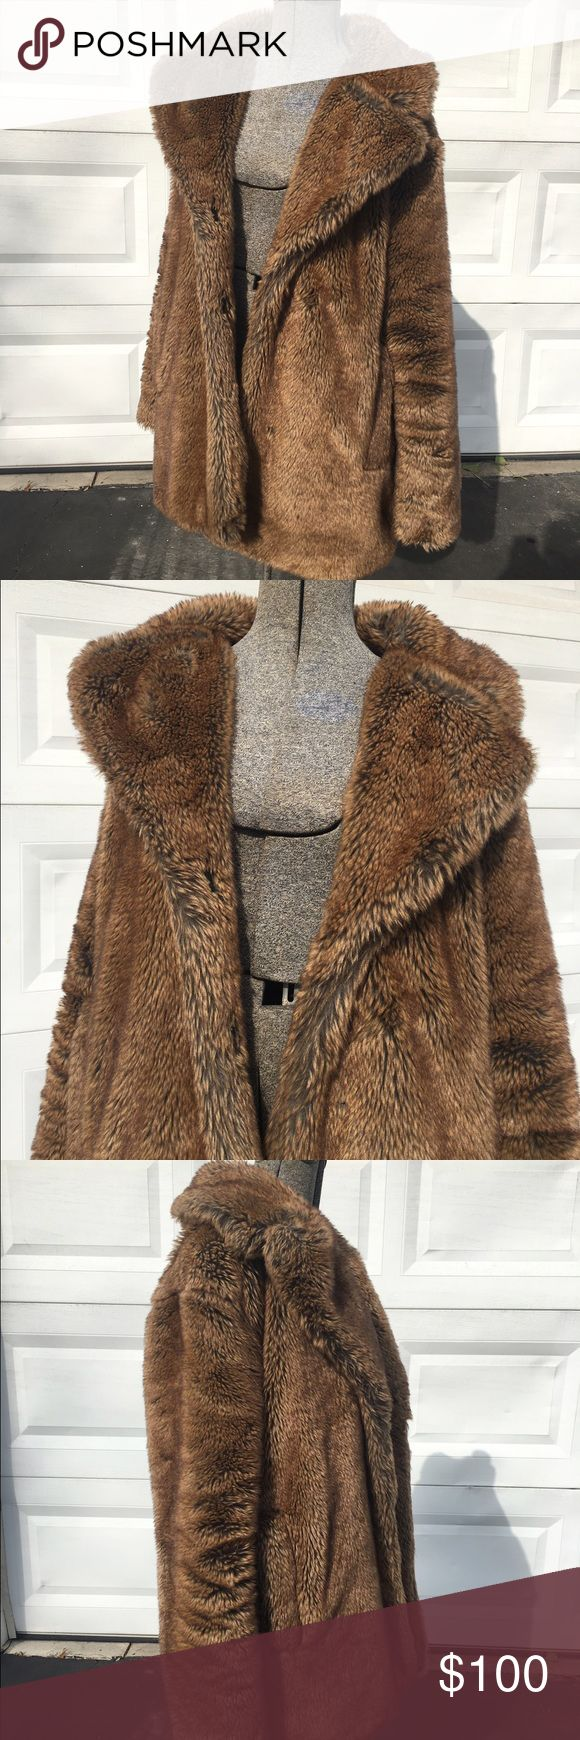 Brown faux fur coat Brown large collar faux fur coat purchased at a boutique in London. This jacket has been very worn so please see images. Jackets & Coats